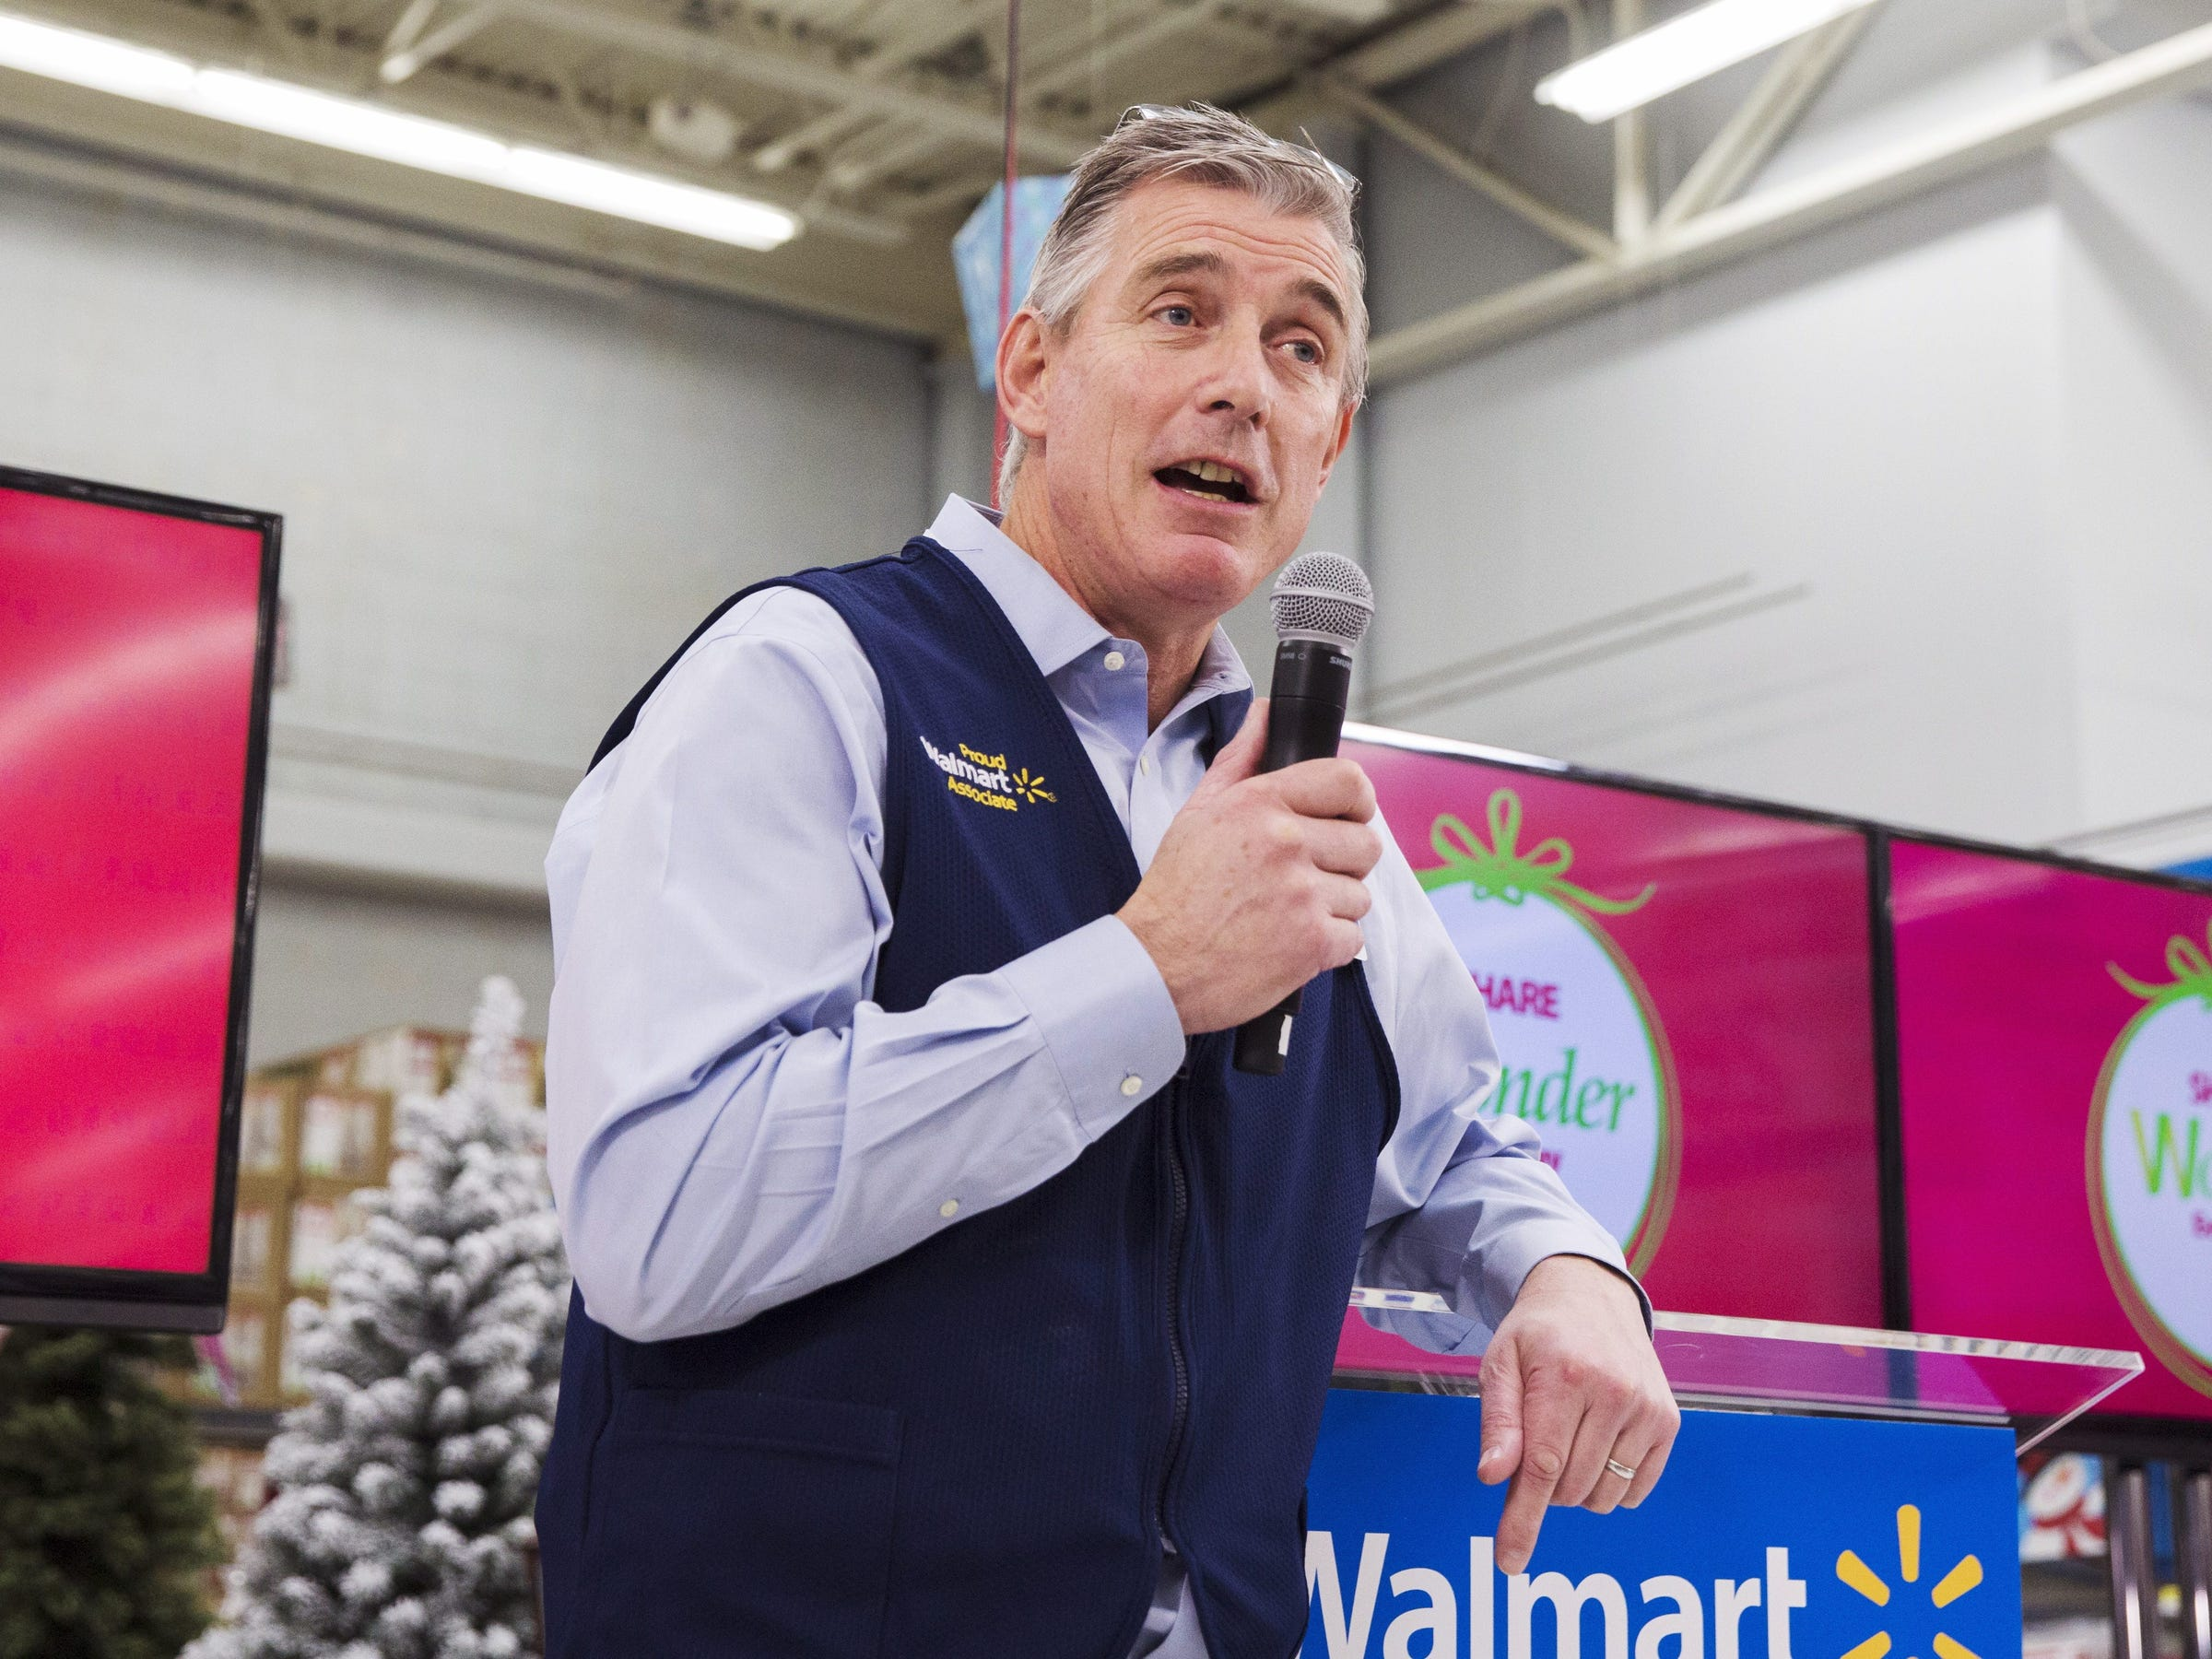 Greg Foran, president and CEO of Walmart U.S., speaks about the company's Black Friday plans at a Walmart store in Secaucus, New Jersey